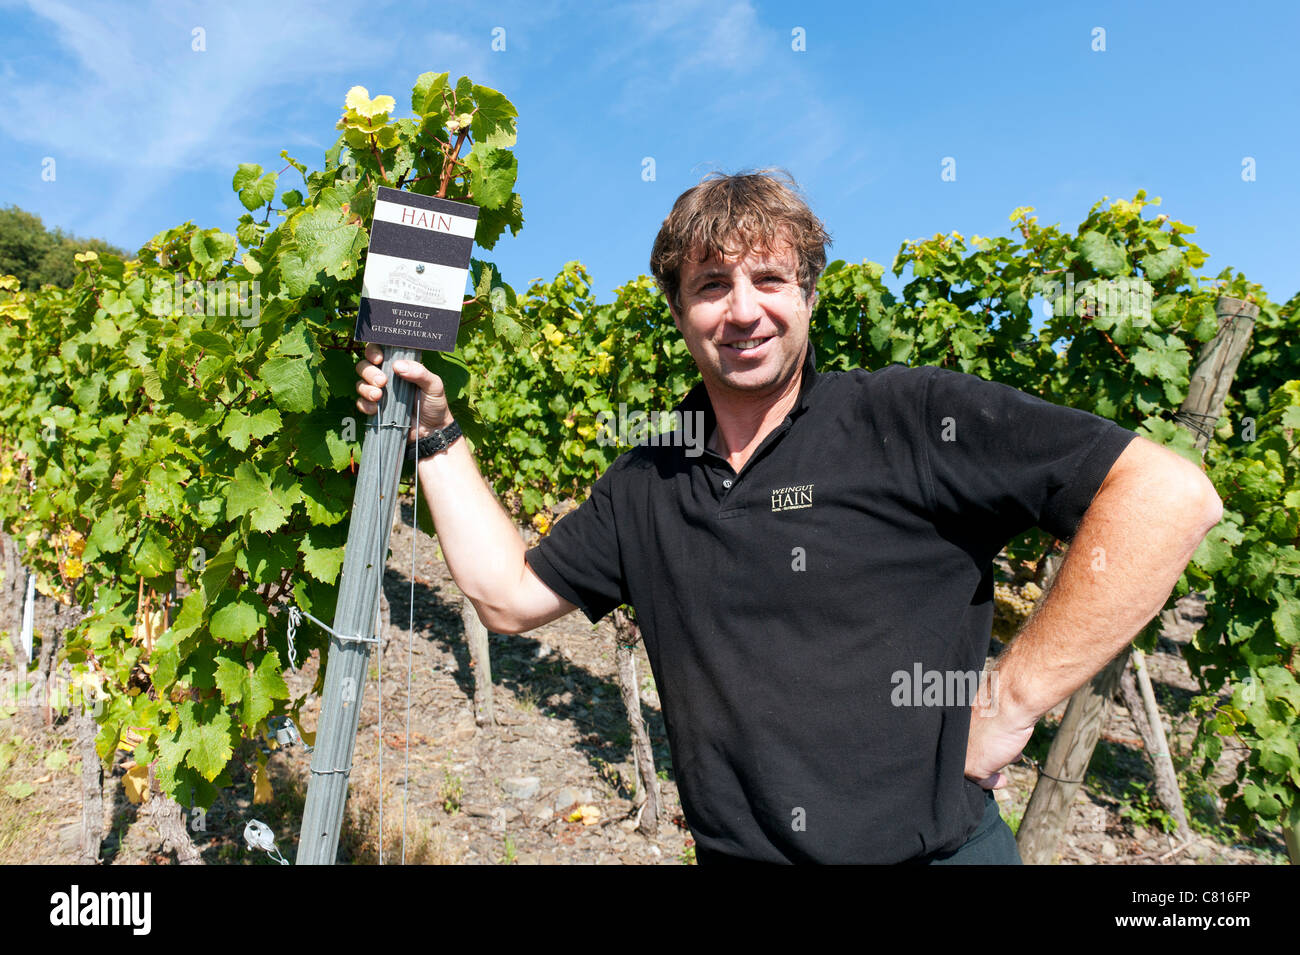 Herr Hain the winemaker in his vineyard at Piesport in Mosel valley wine region of Germany - Stock Image